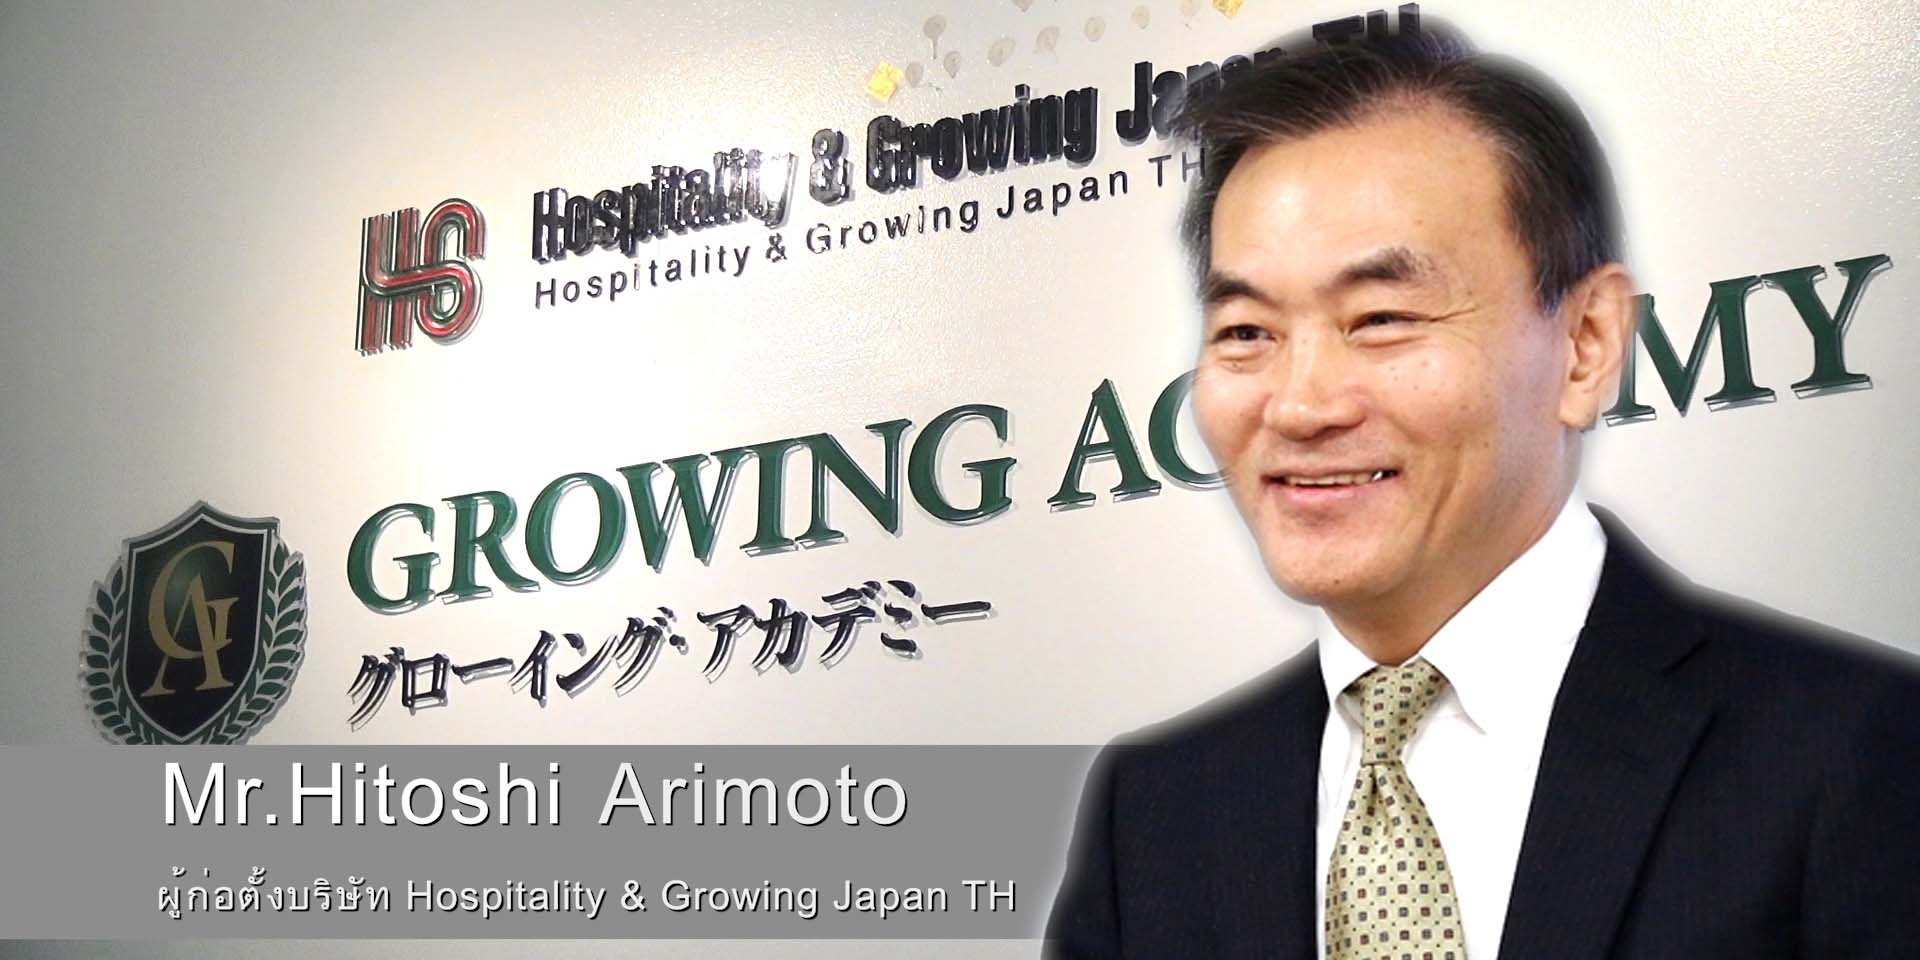 Hospitality & Growing Japan TH